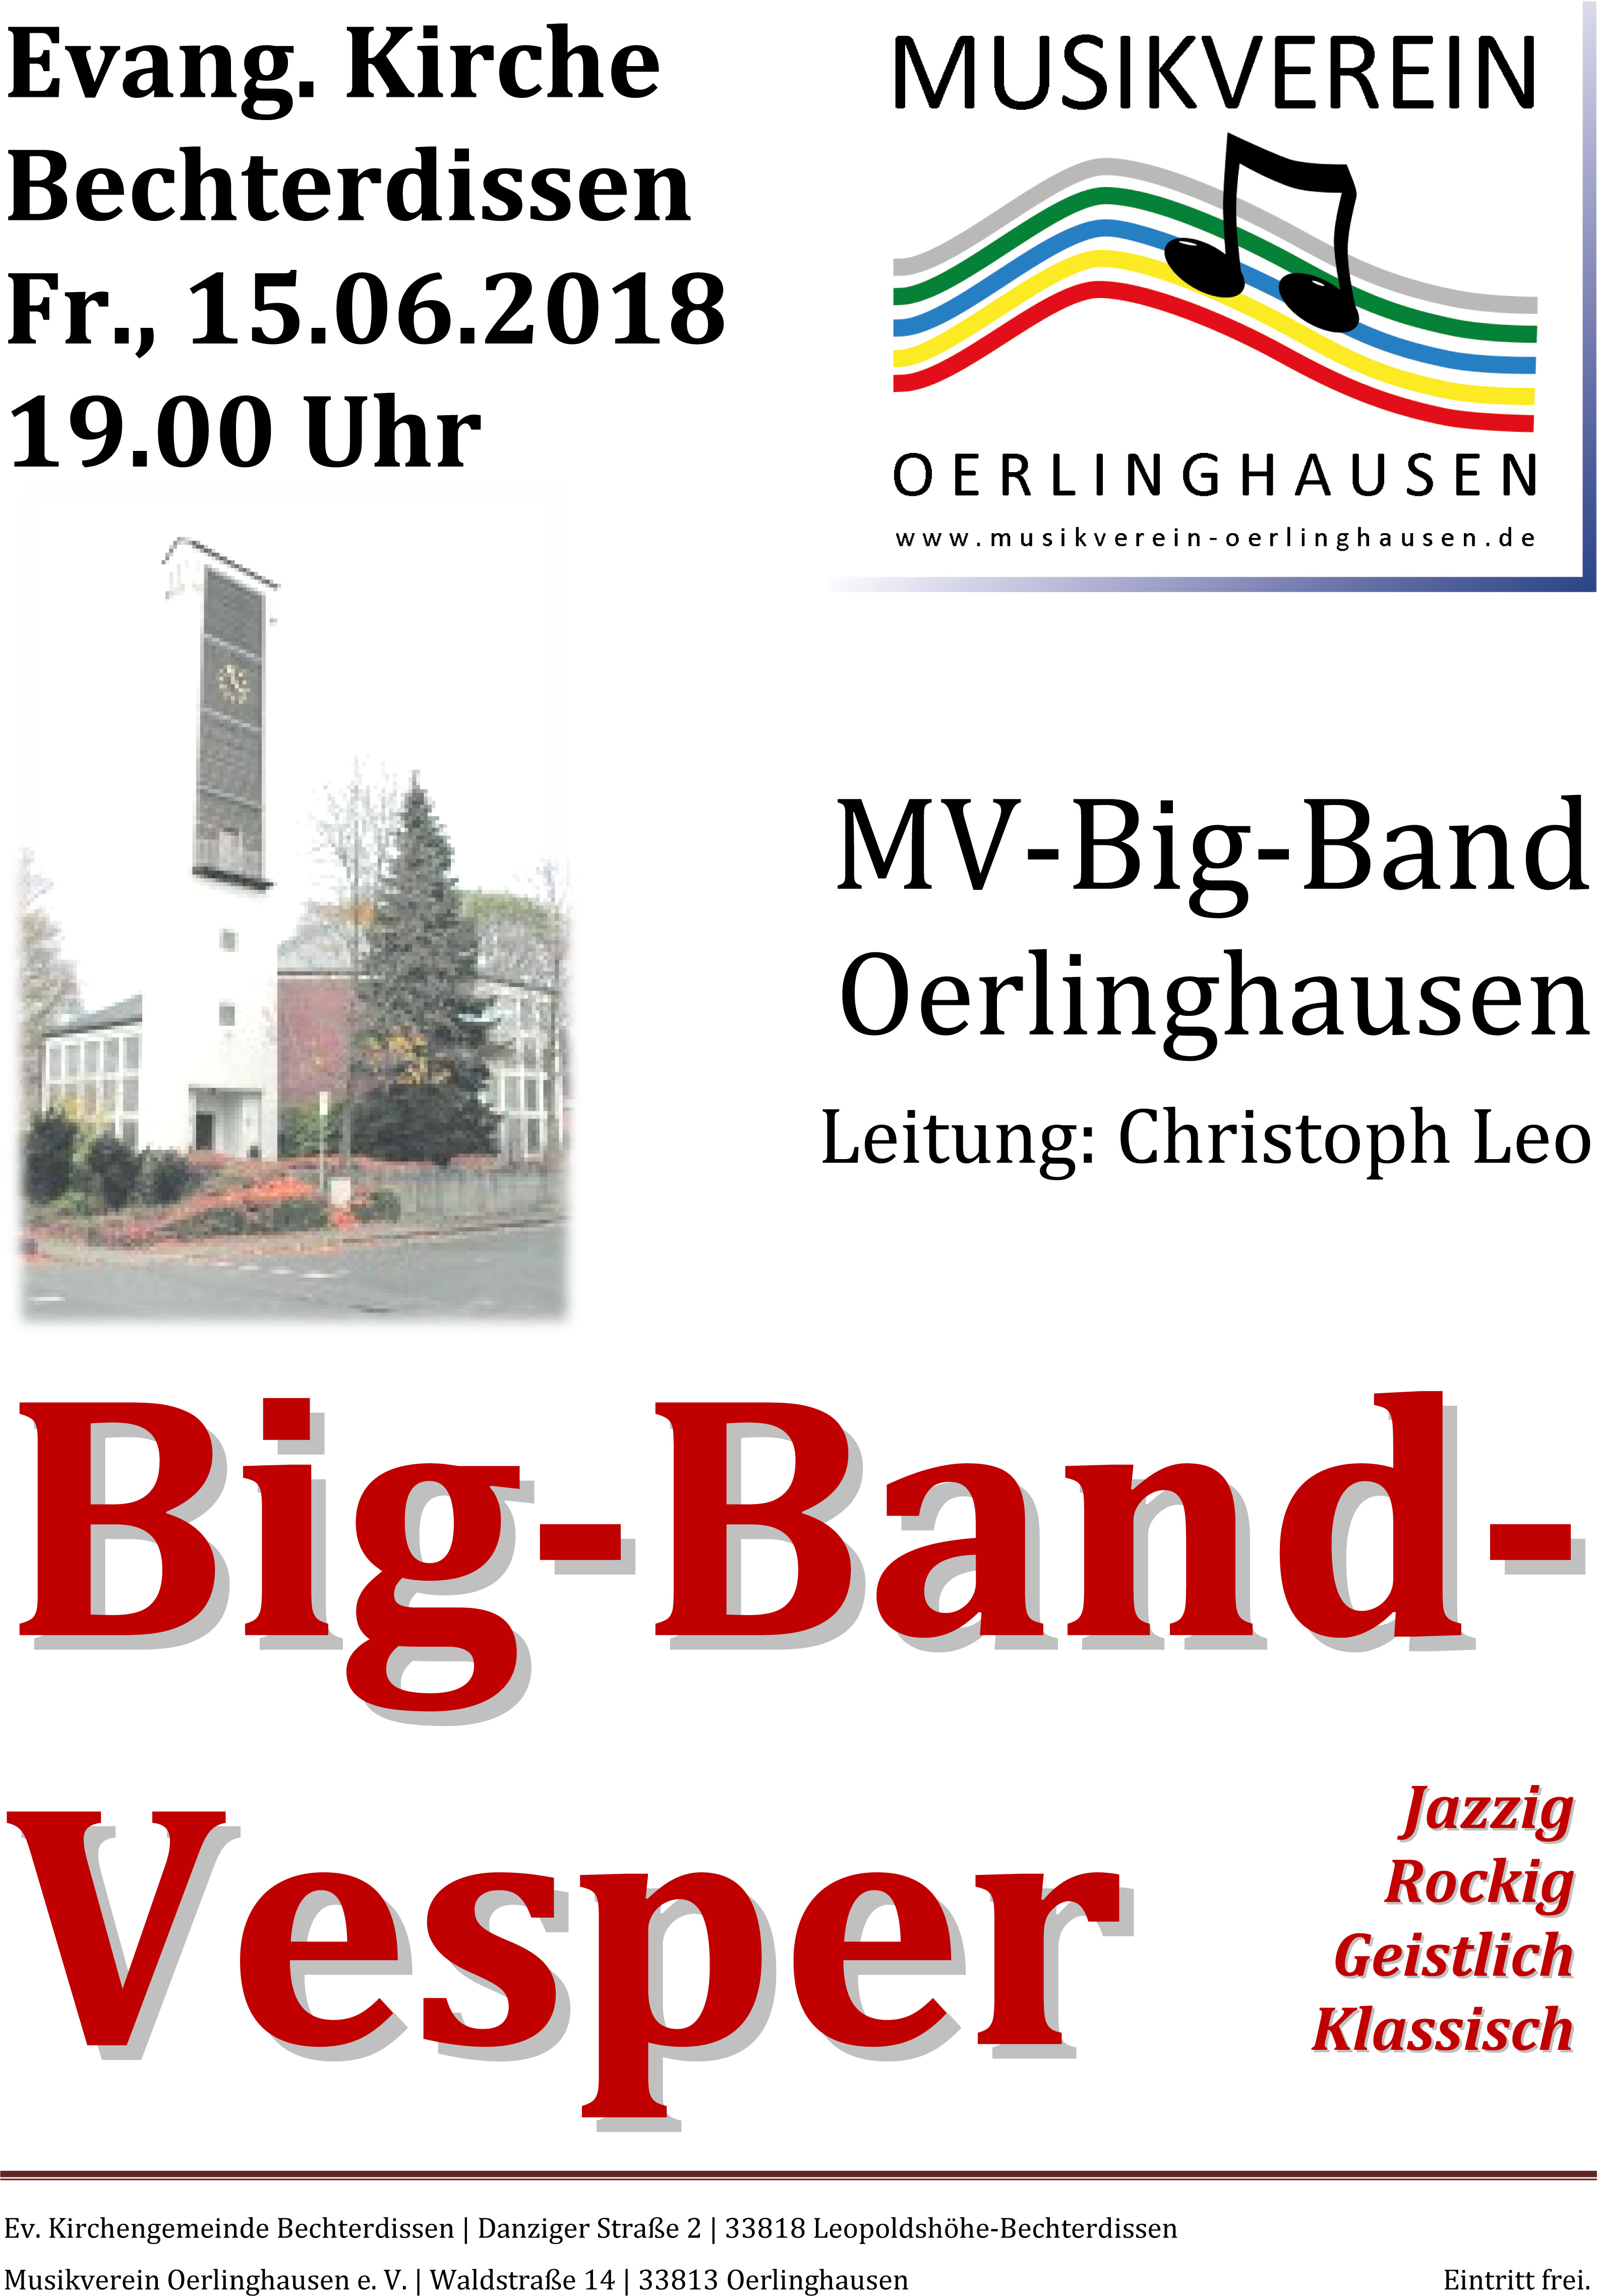 Microsoft Word - Konzert 2018-05-16 Big-Band Vesper - Plakat